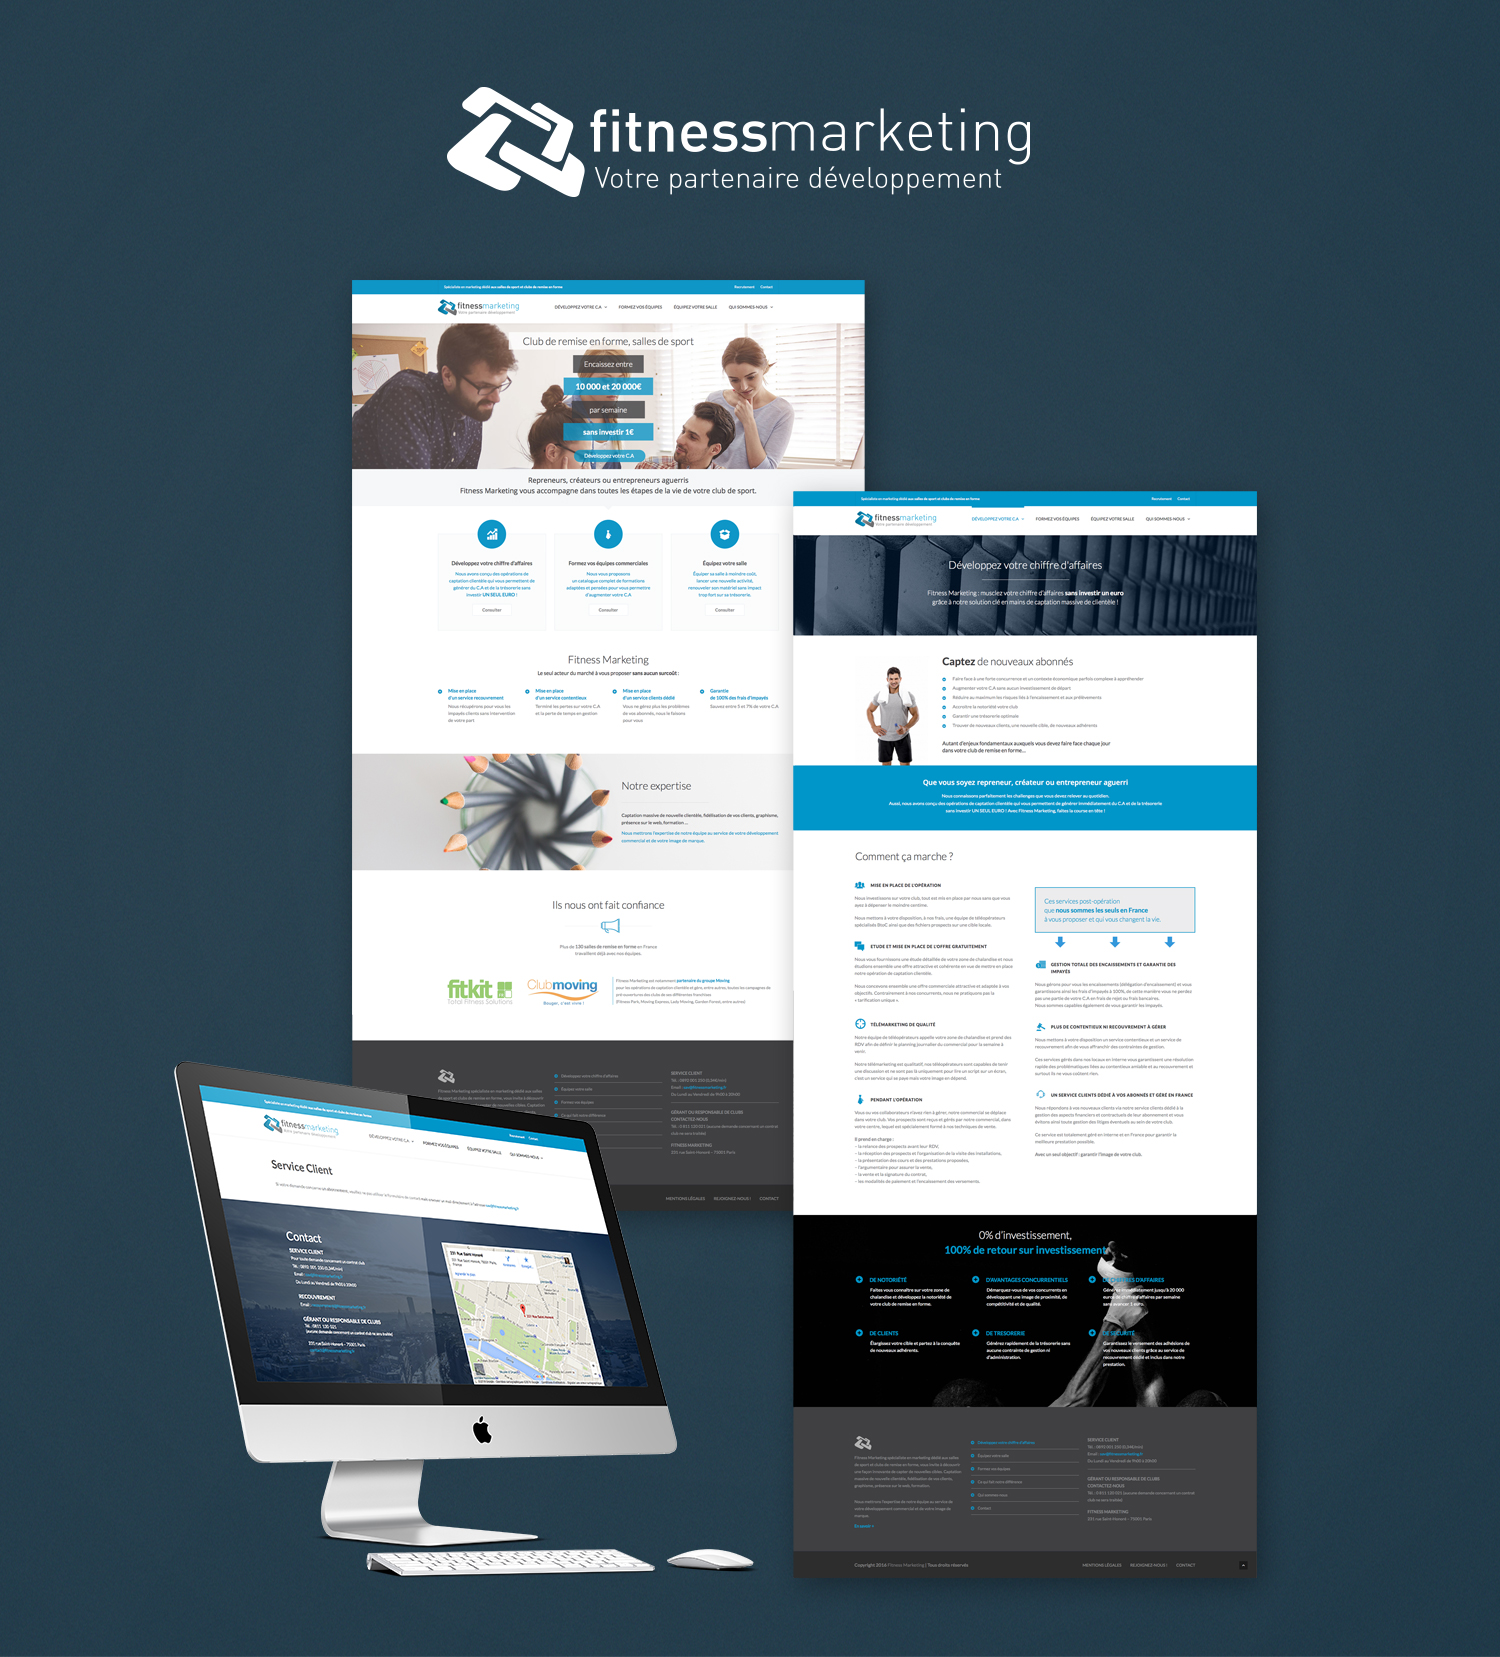 fitness-marketing-webdesign